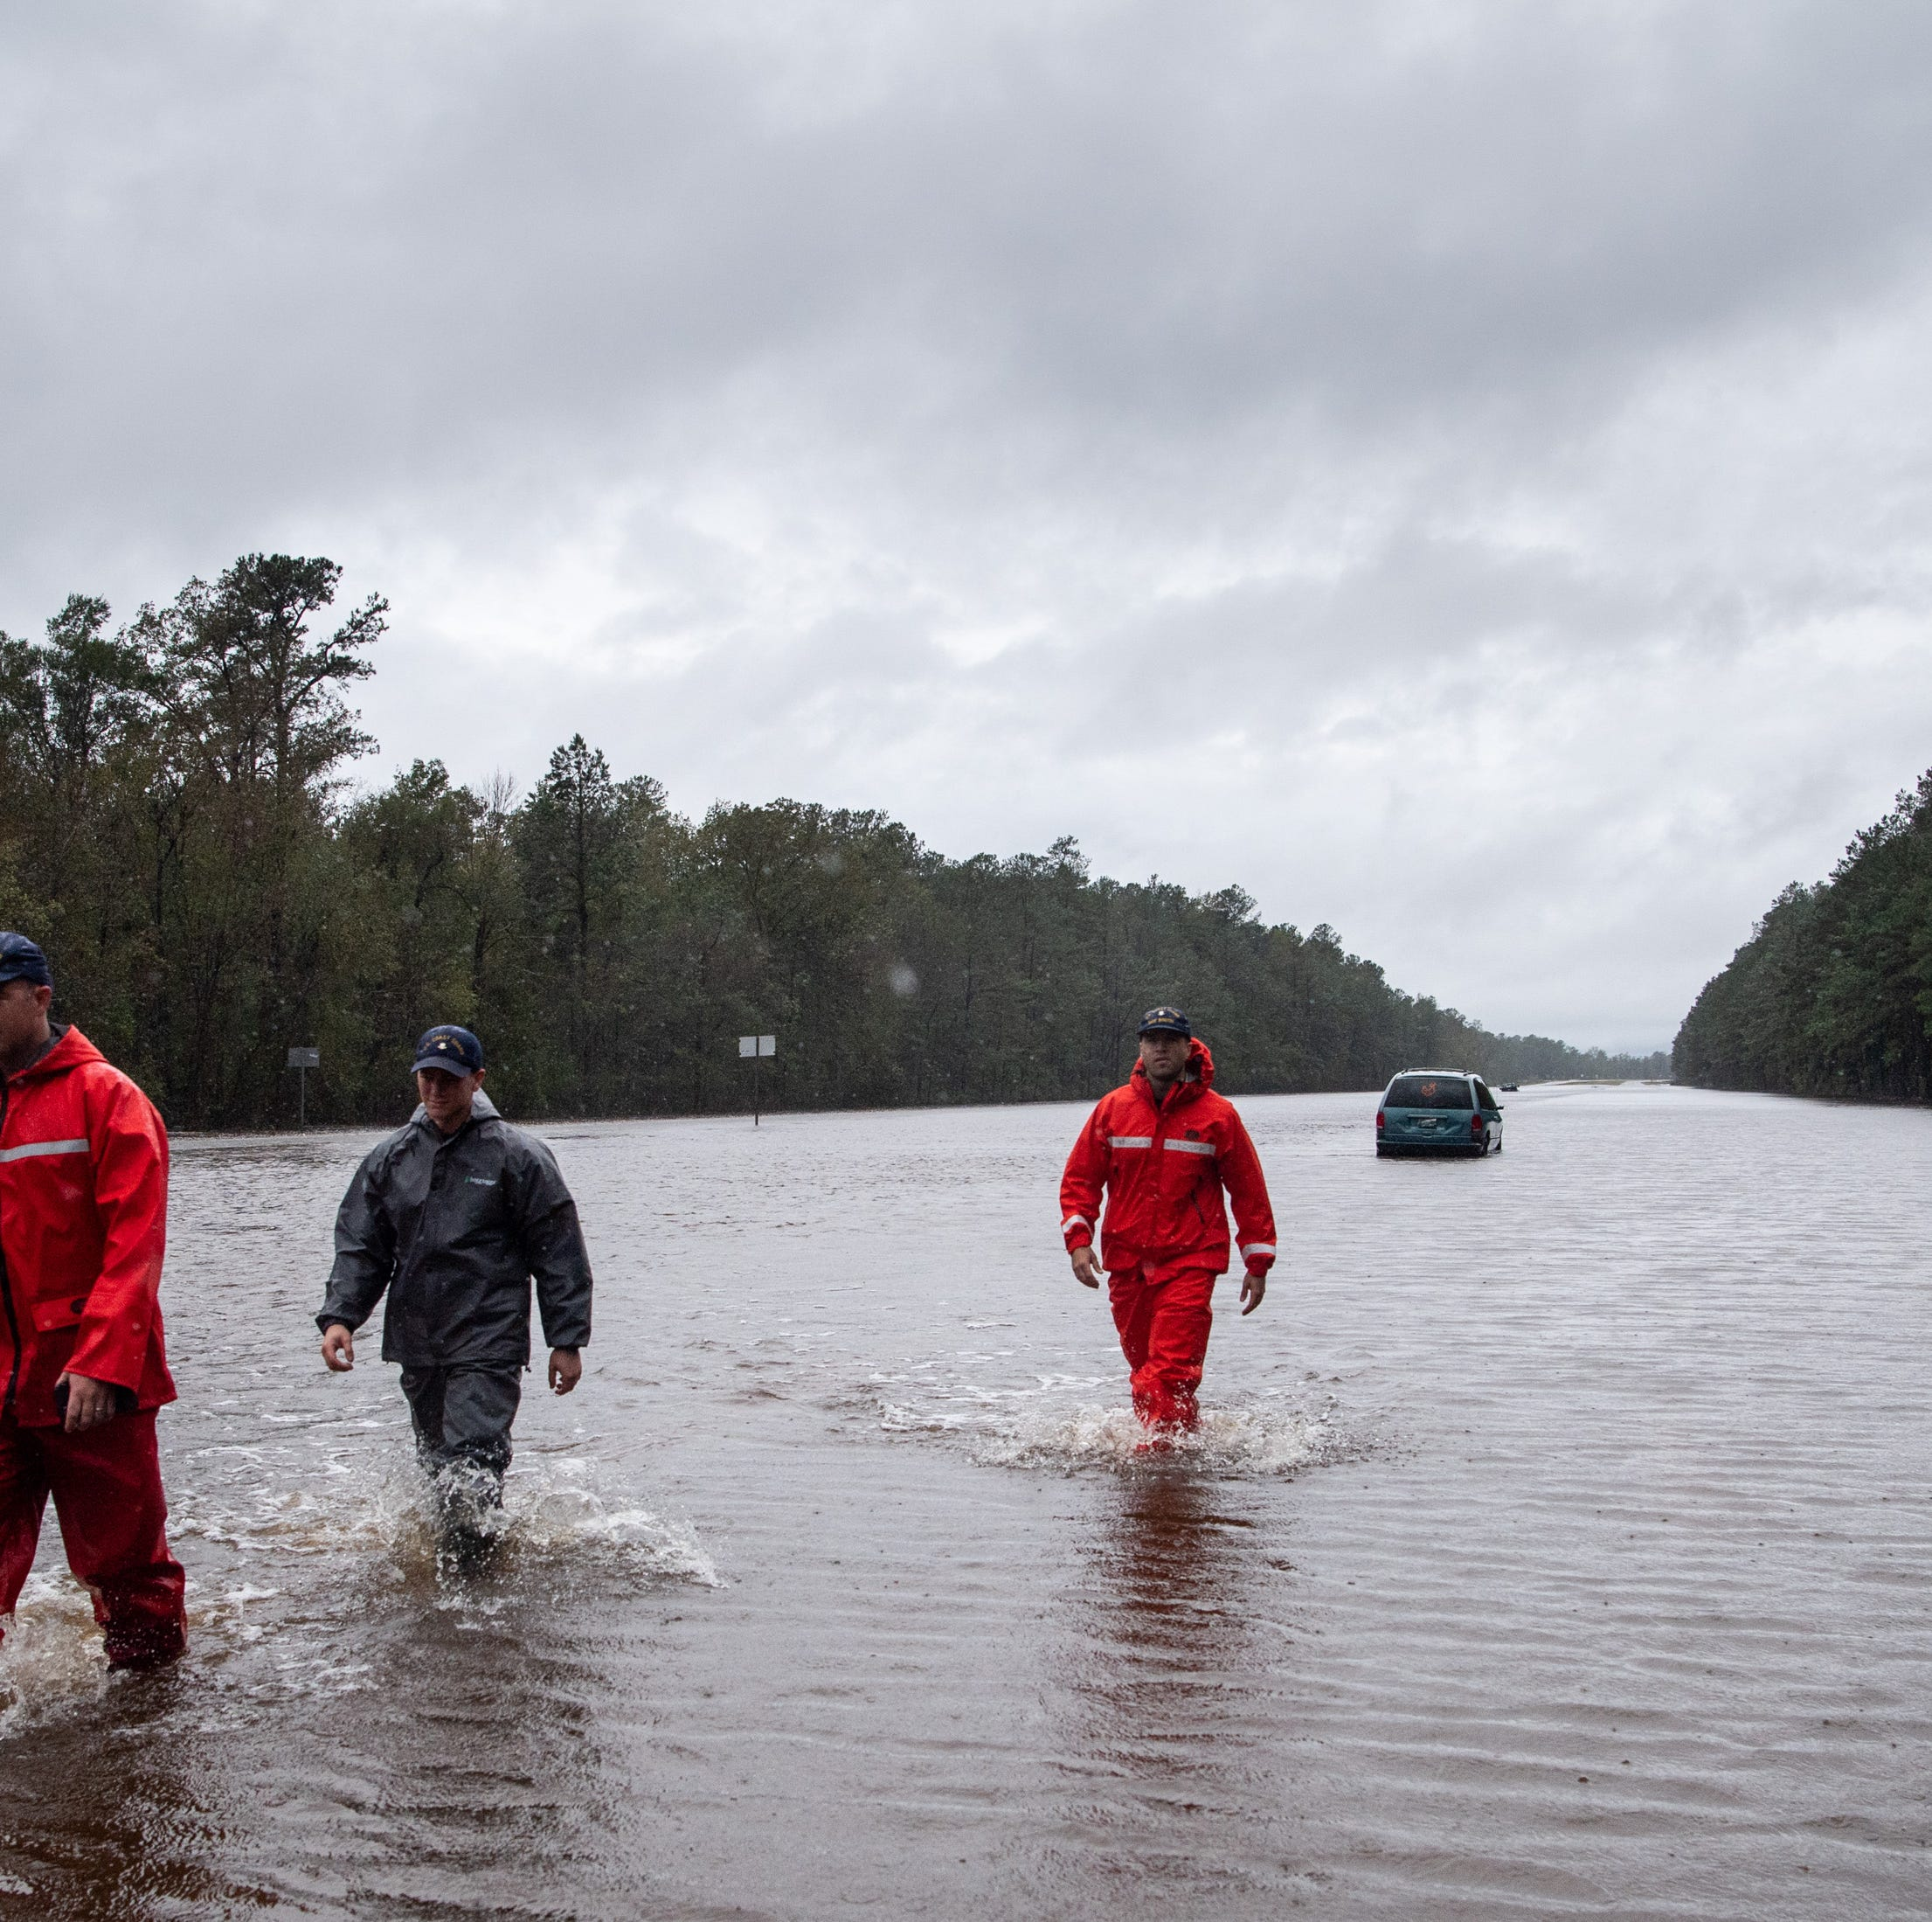 Hurricane Florence leaves a trail of tragedy and lessons